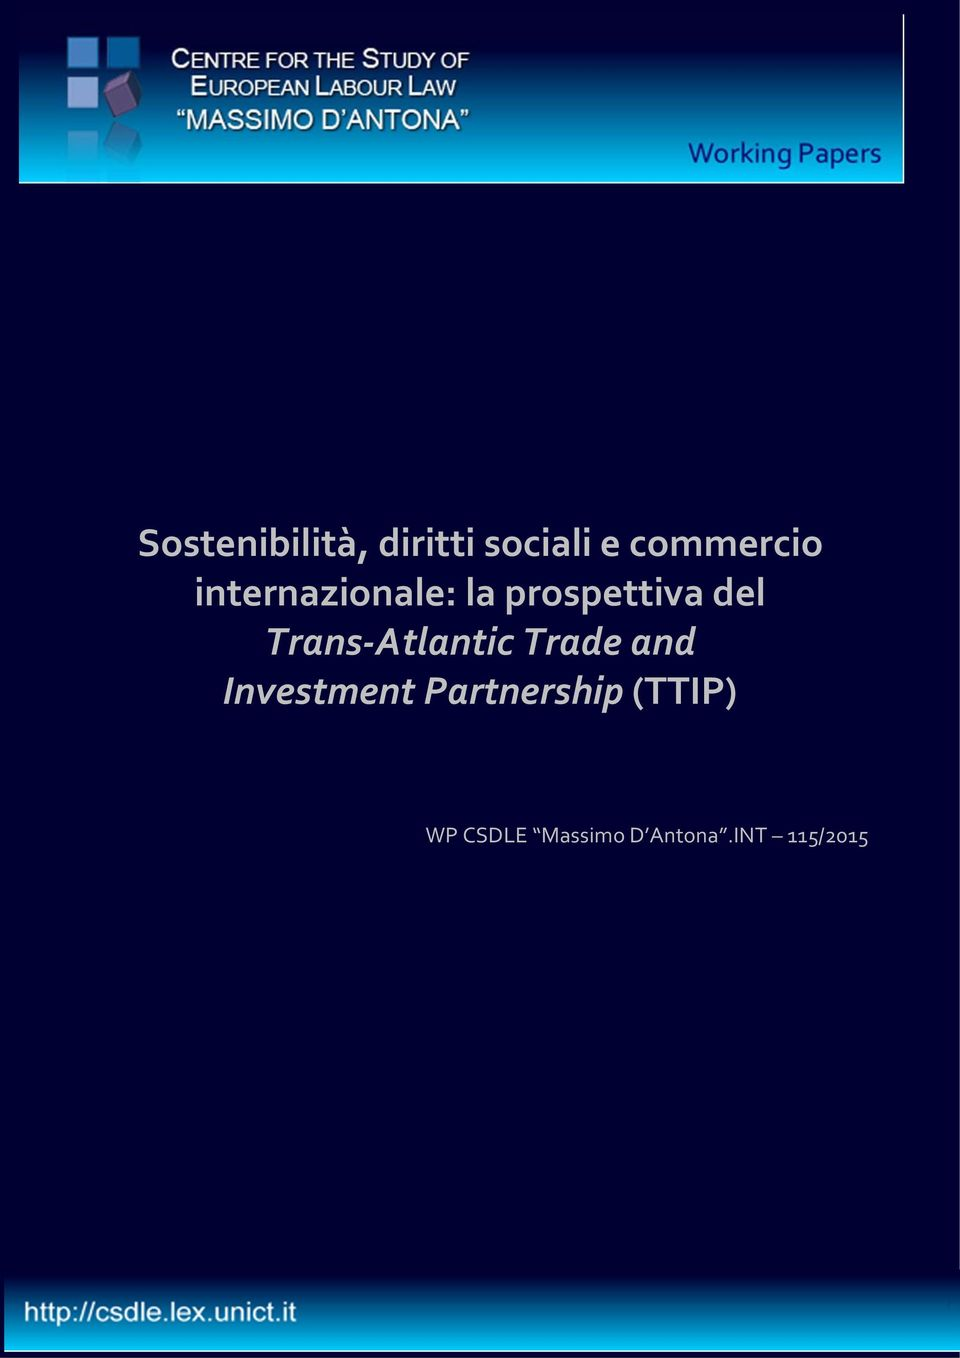 Trans Atlantic Trade and Investment